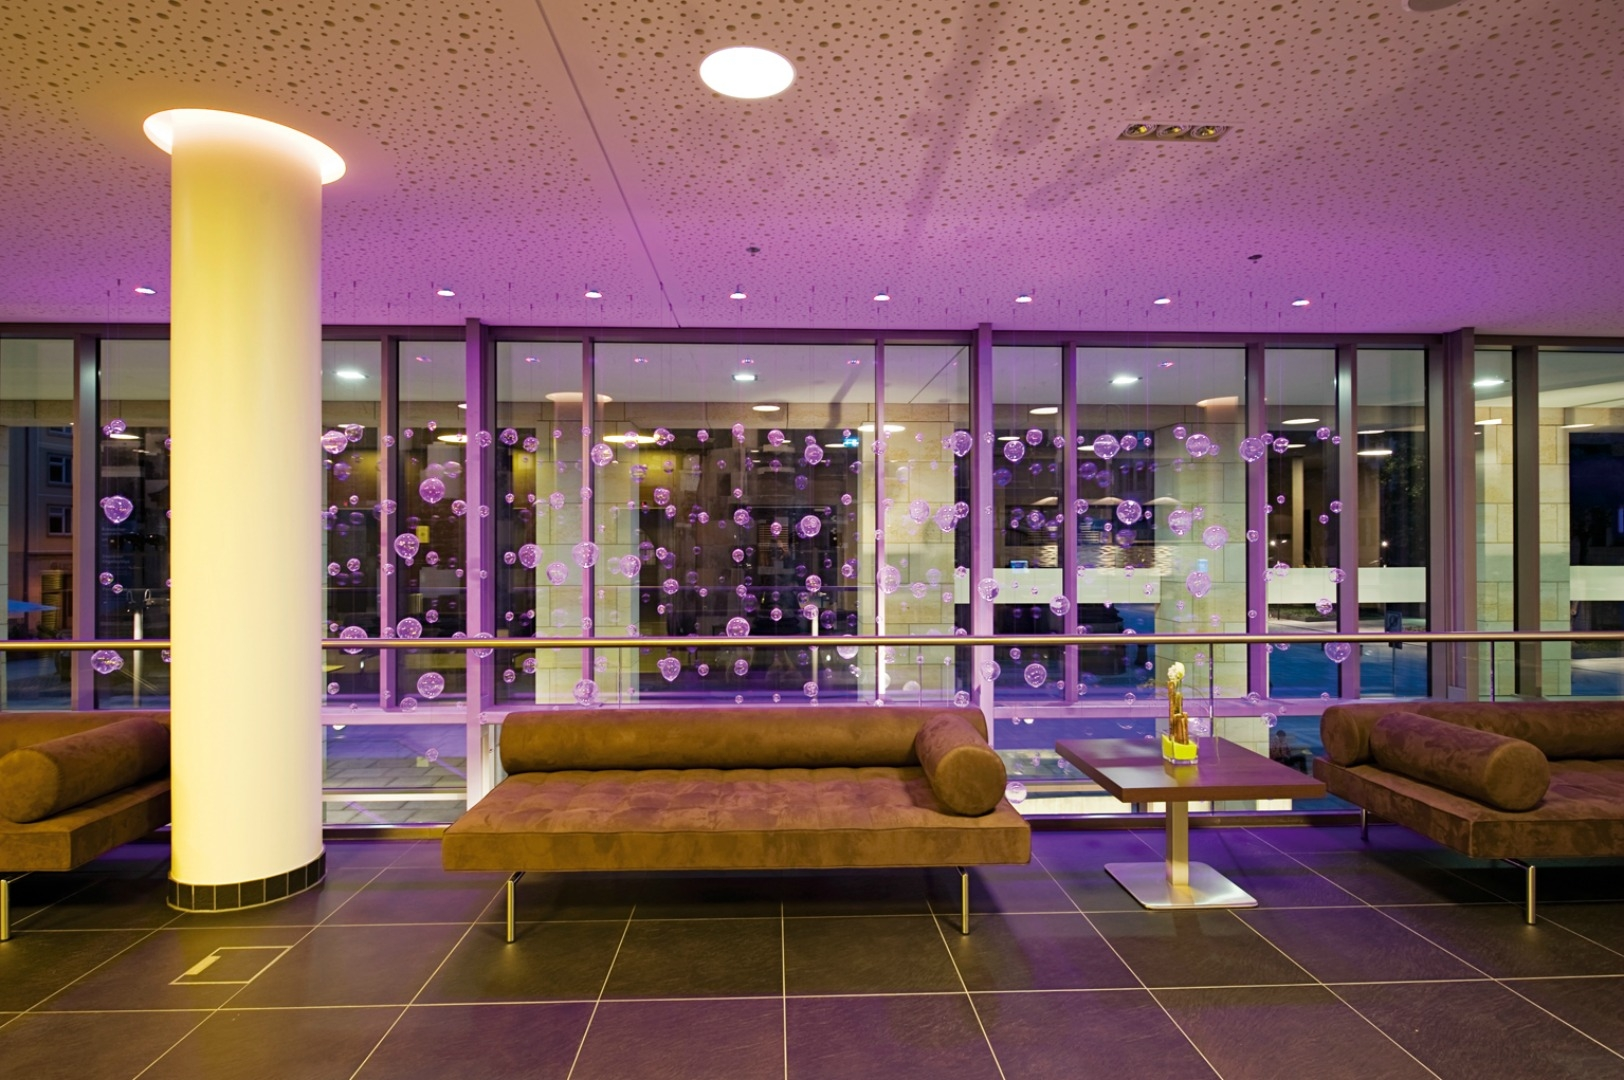 208121 nh%20collection%20dresden%20altmarkt%20 %20lobby%20and%20reception ab8a8c original 1463059770